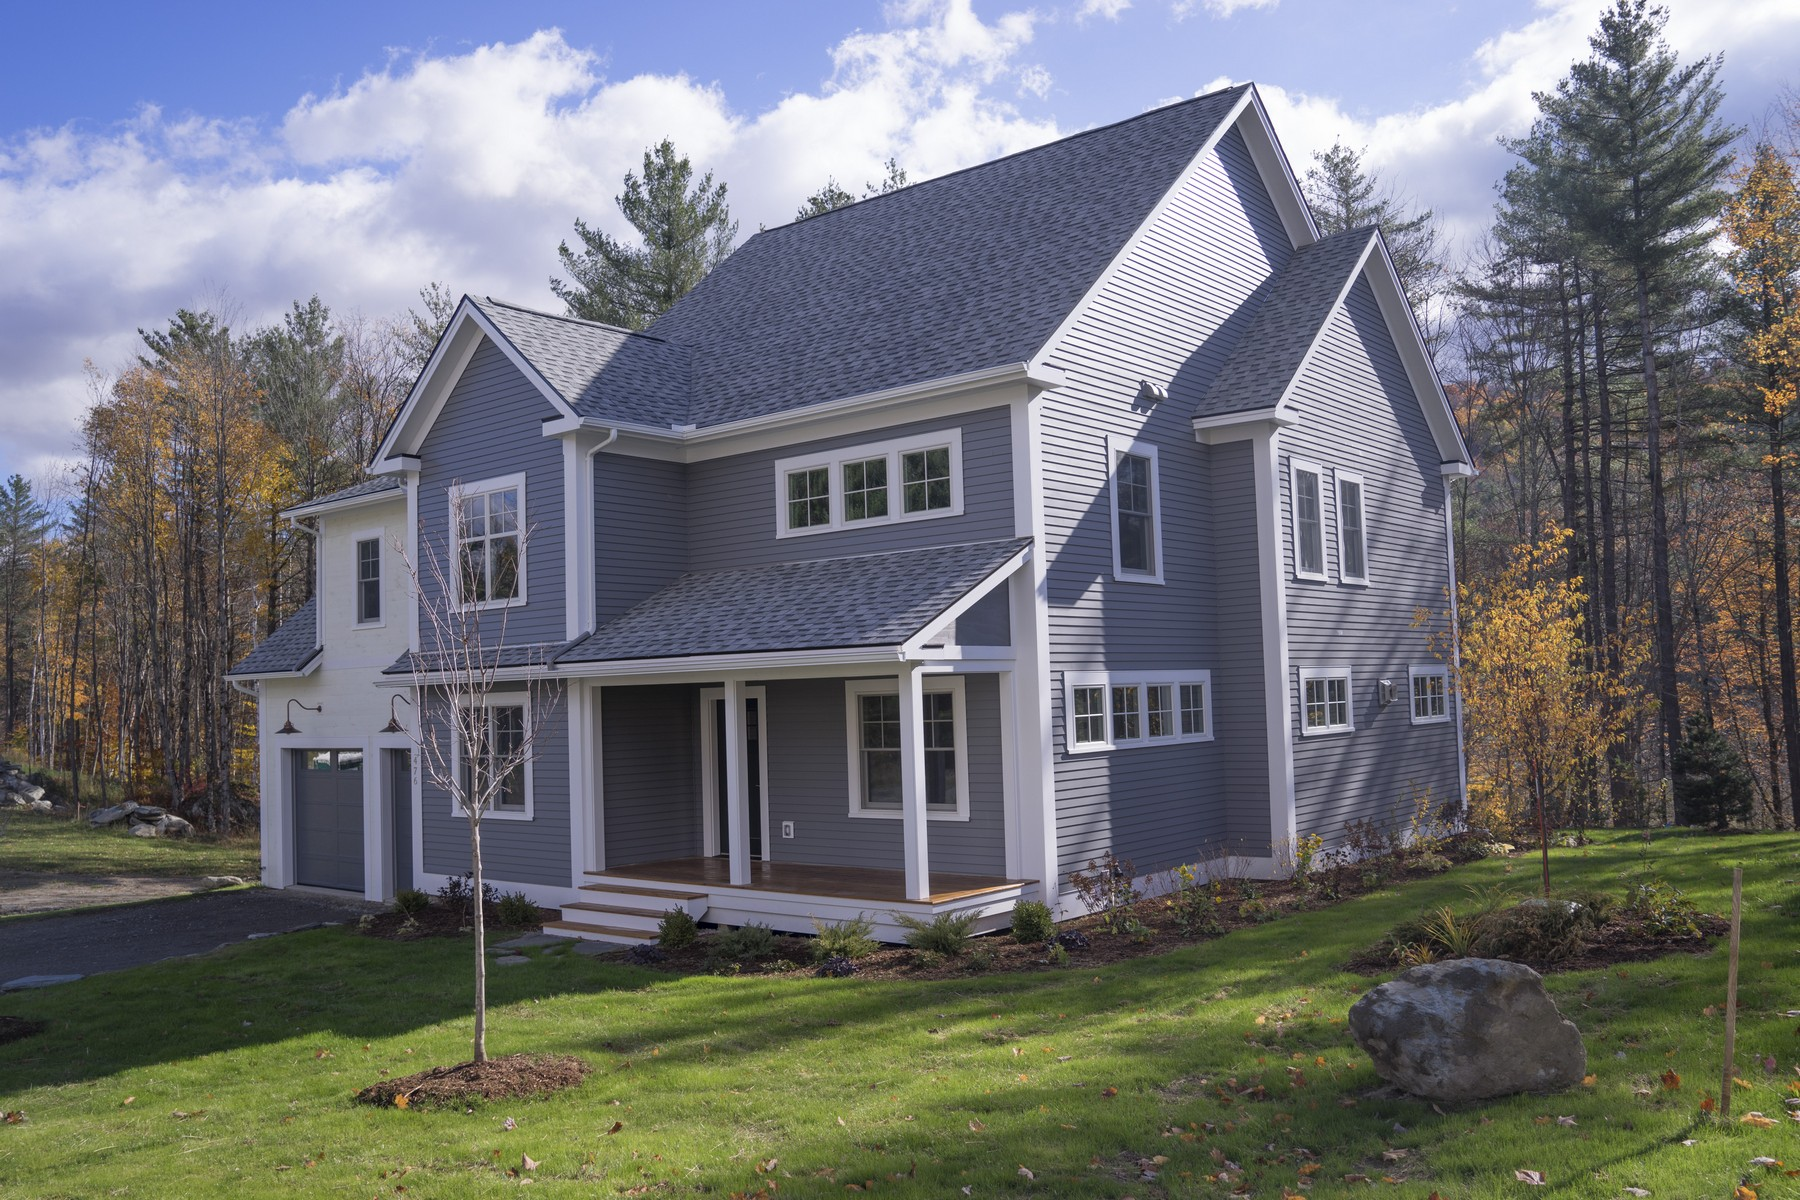 Single Family Home for Sale at 476 Thomas Lane, Stowe 476 Thomas Ln Stowe, Vermont, 05672 United States